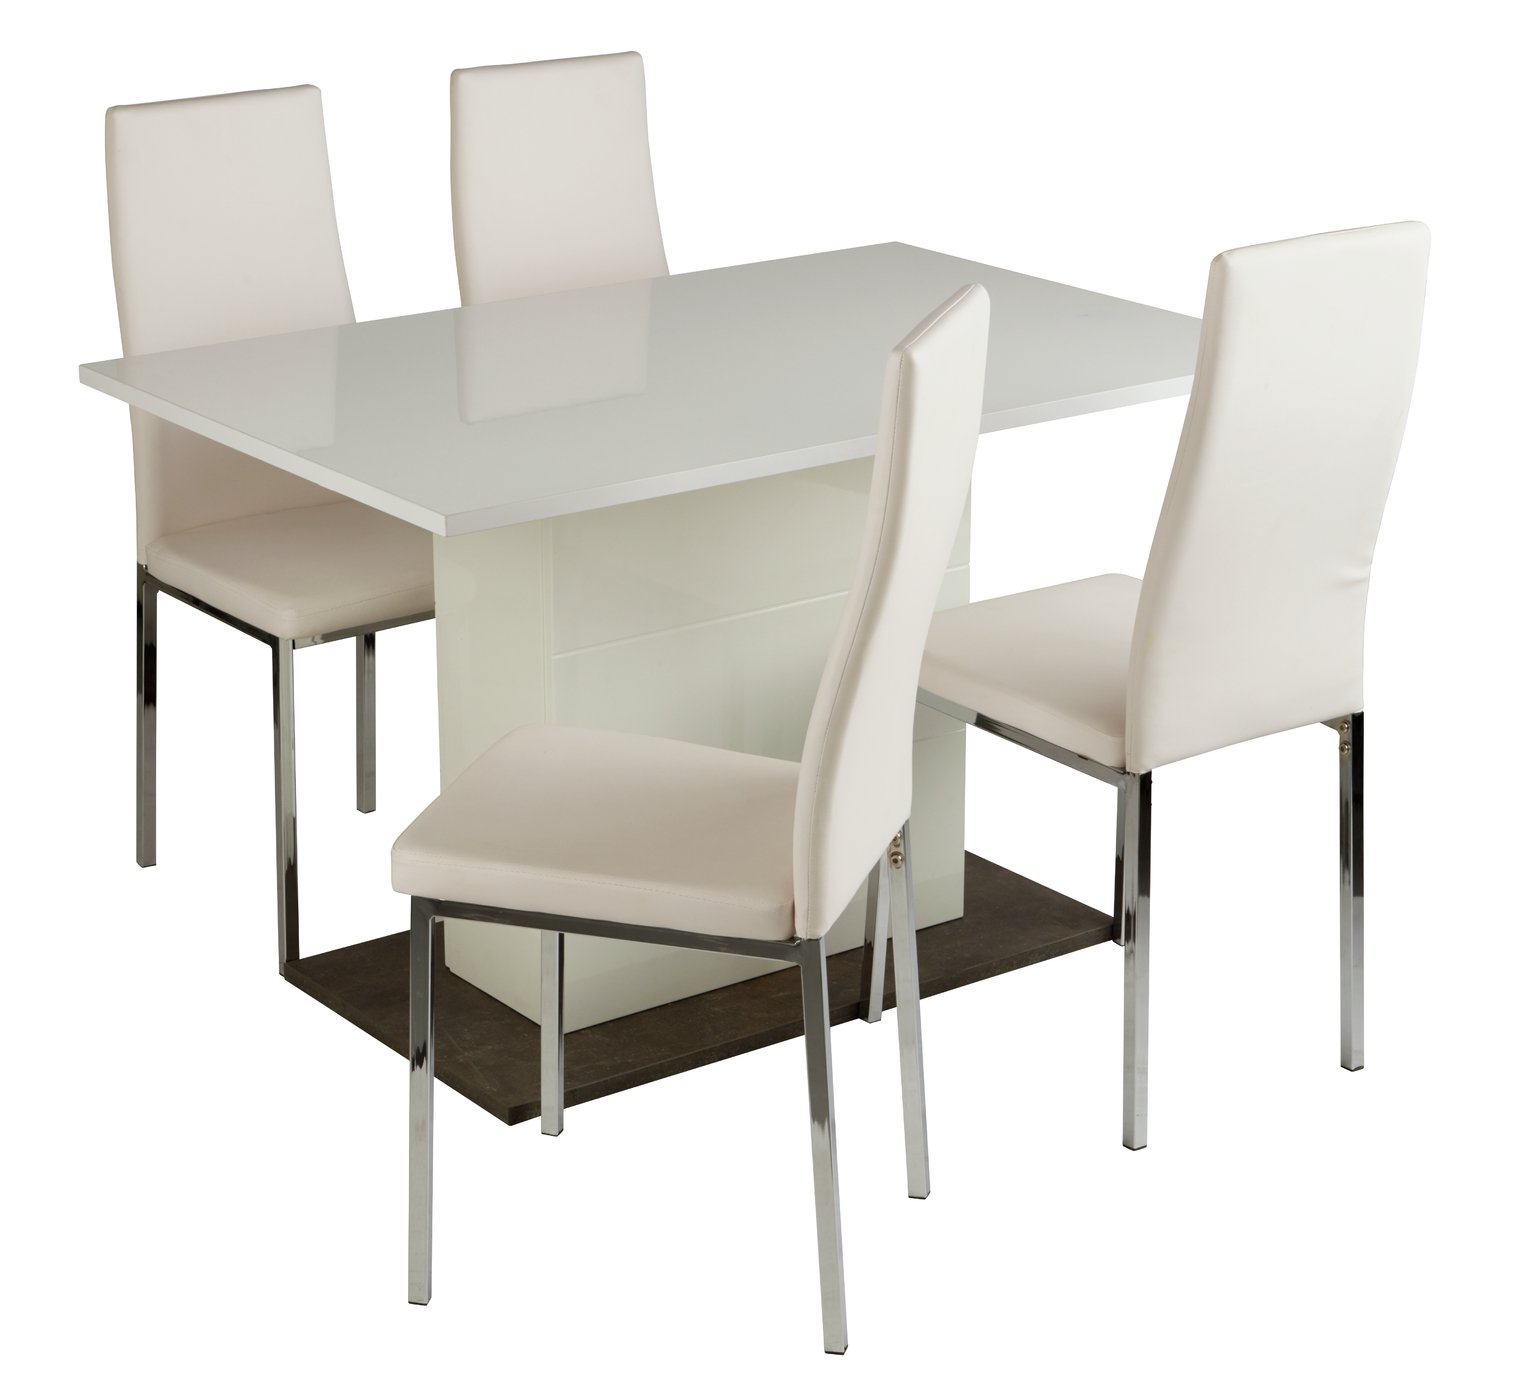 kitchen dining set remodeled ideas sets tables argos home holborn gloss pedastal table 4 chairs